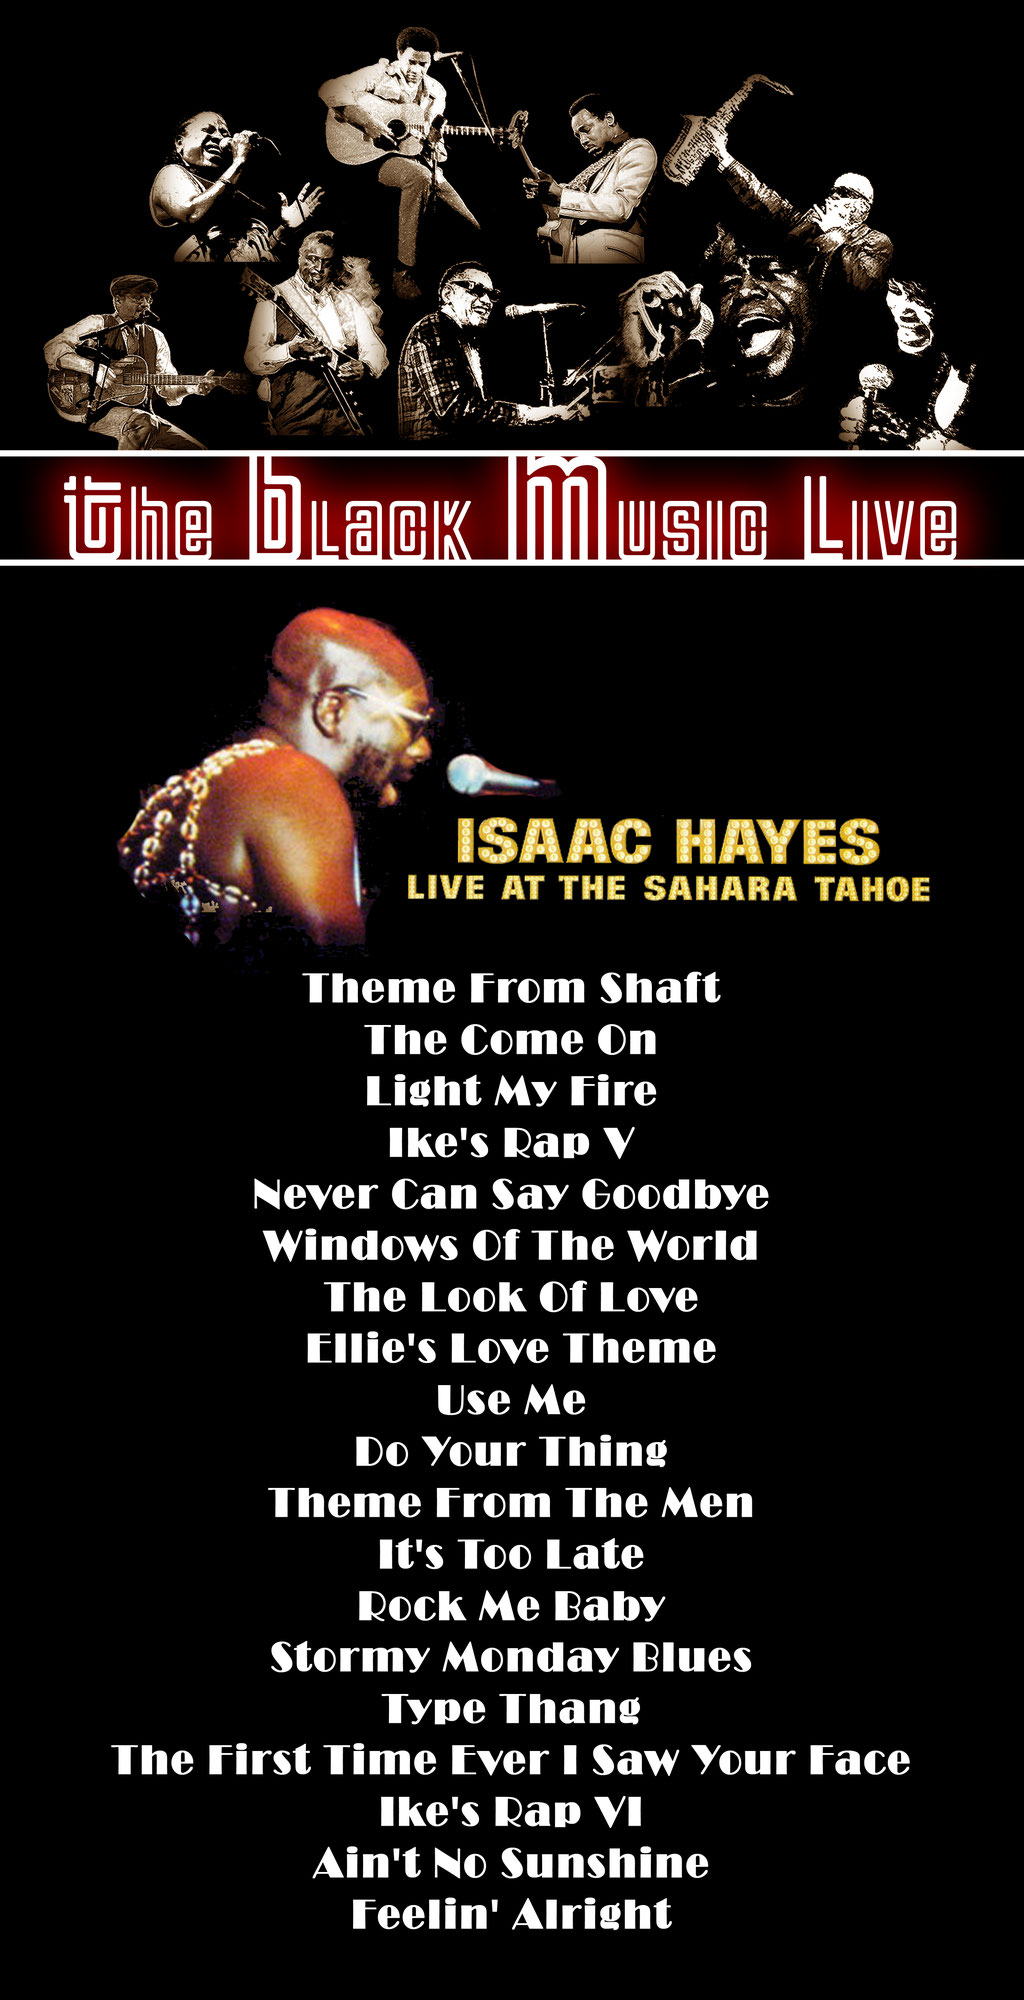 radioshow The Black Music Live #33 - Isaac Hayes, Live at the Sahara Tahoe